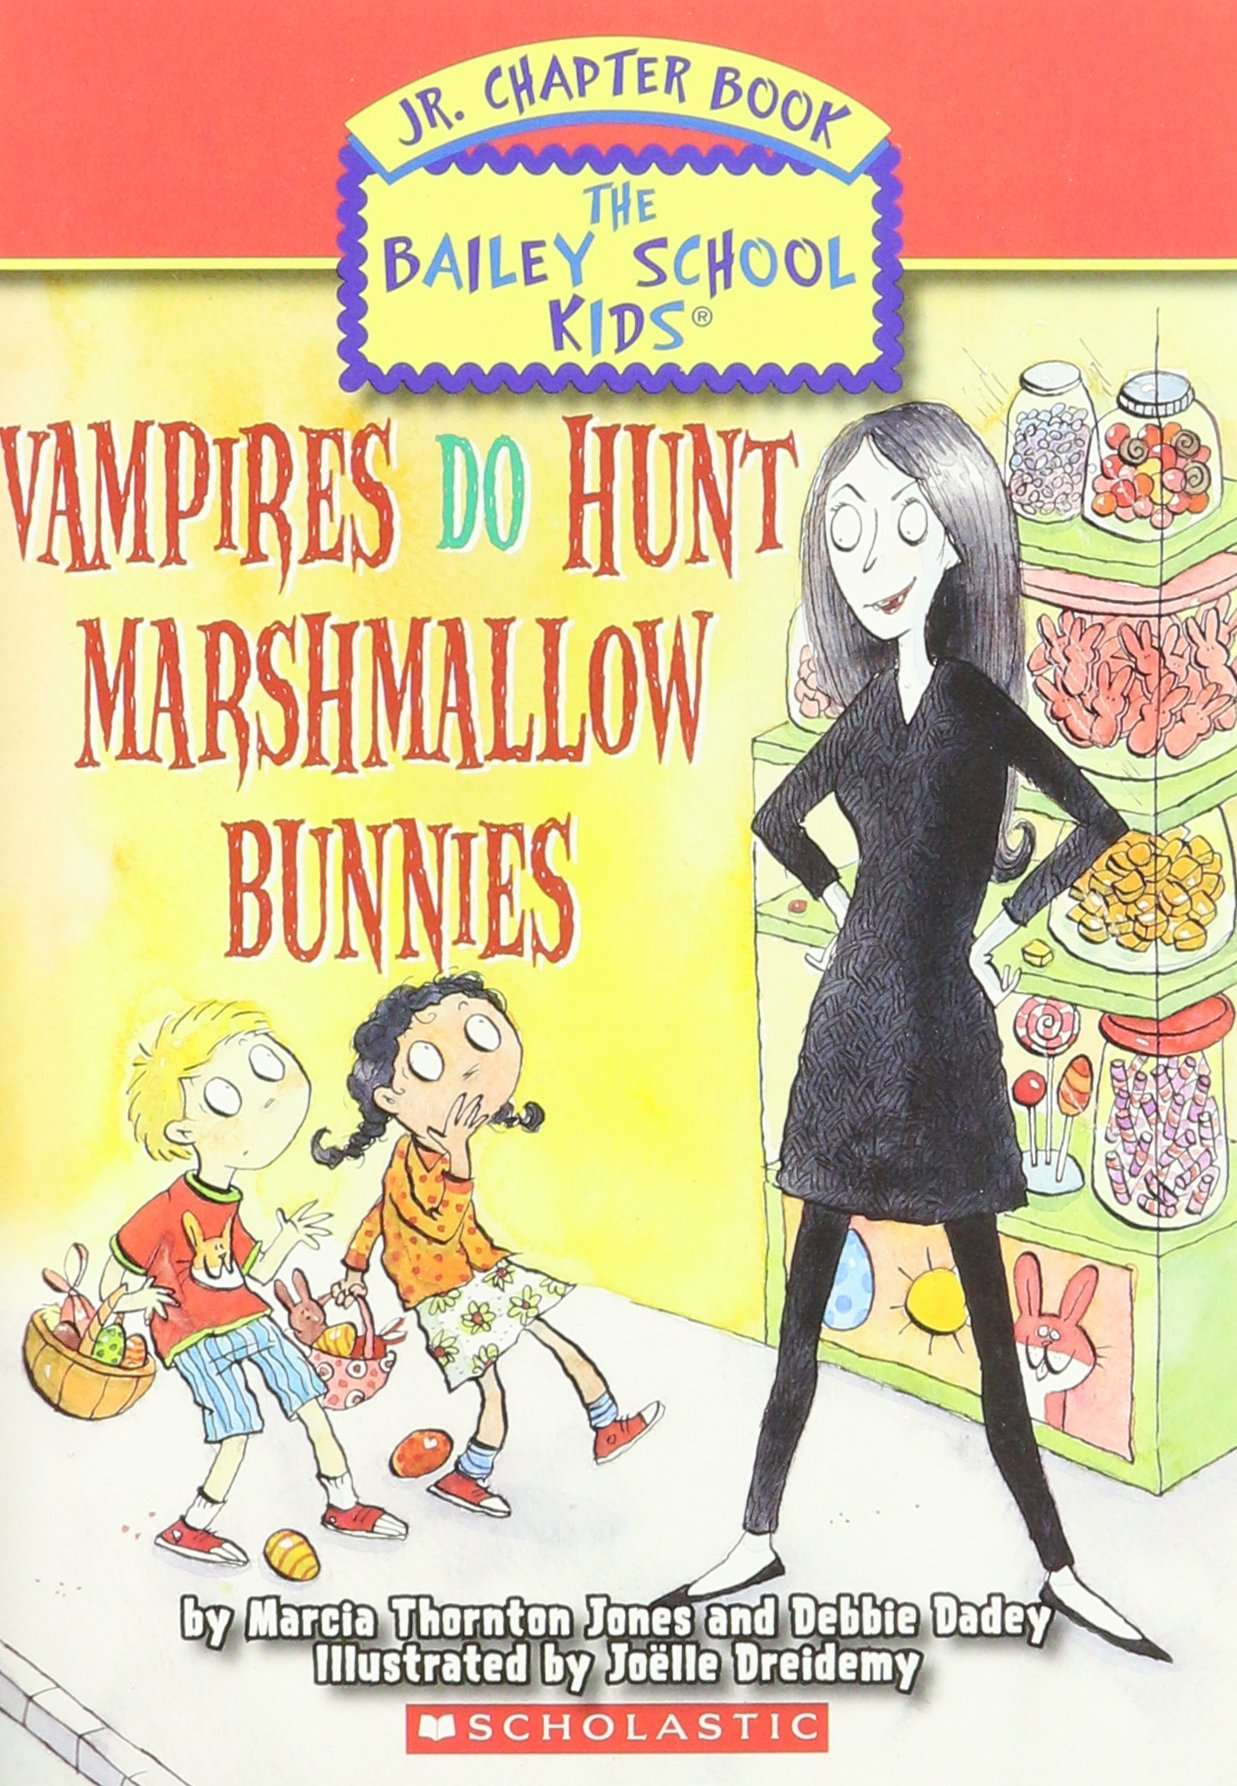 Vampires Do Hunt Marshmallow Bunnies (Bailey School Kids Jr. Chapter Book, pdf